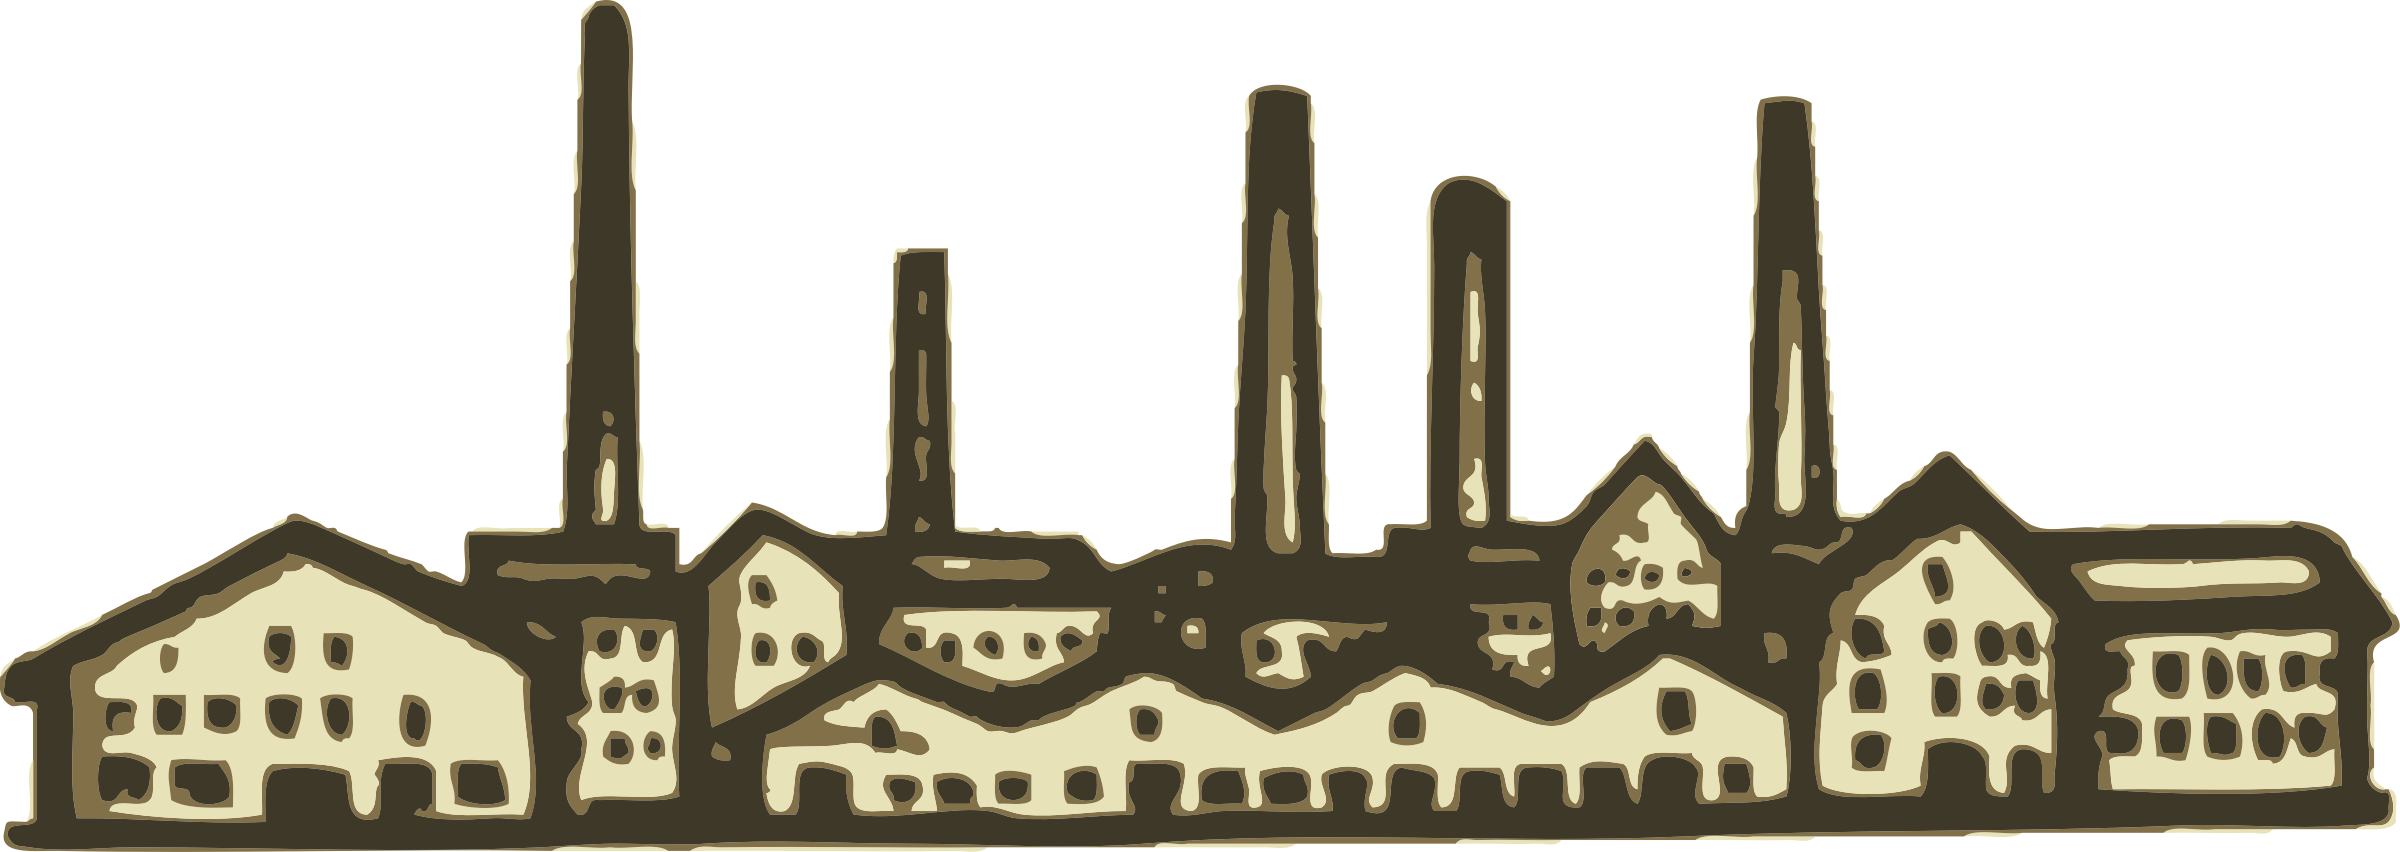 Factory clipart big factory. Old image png